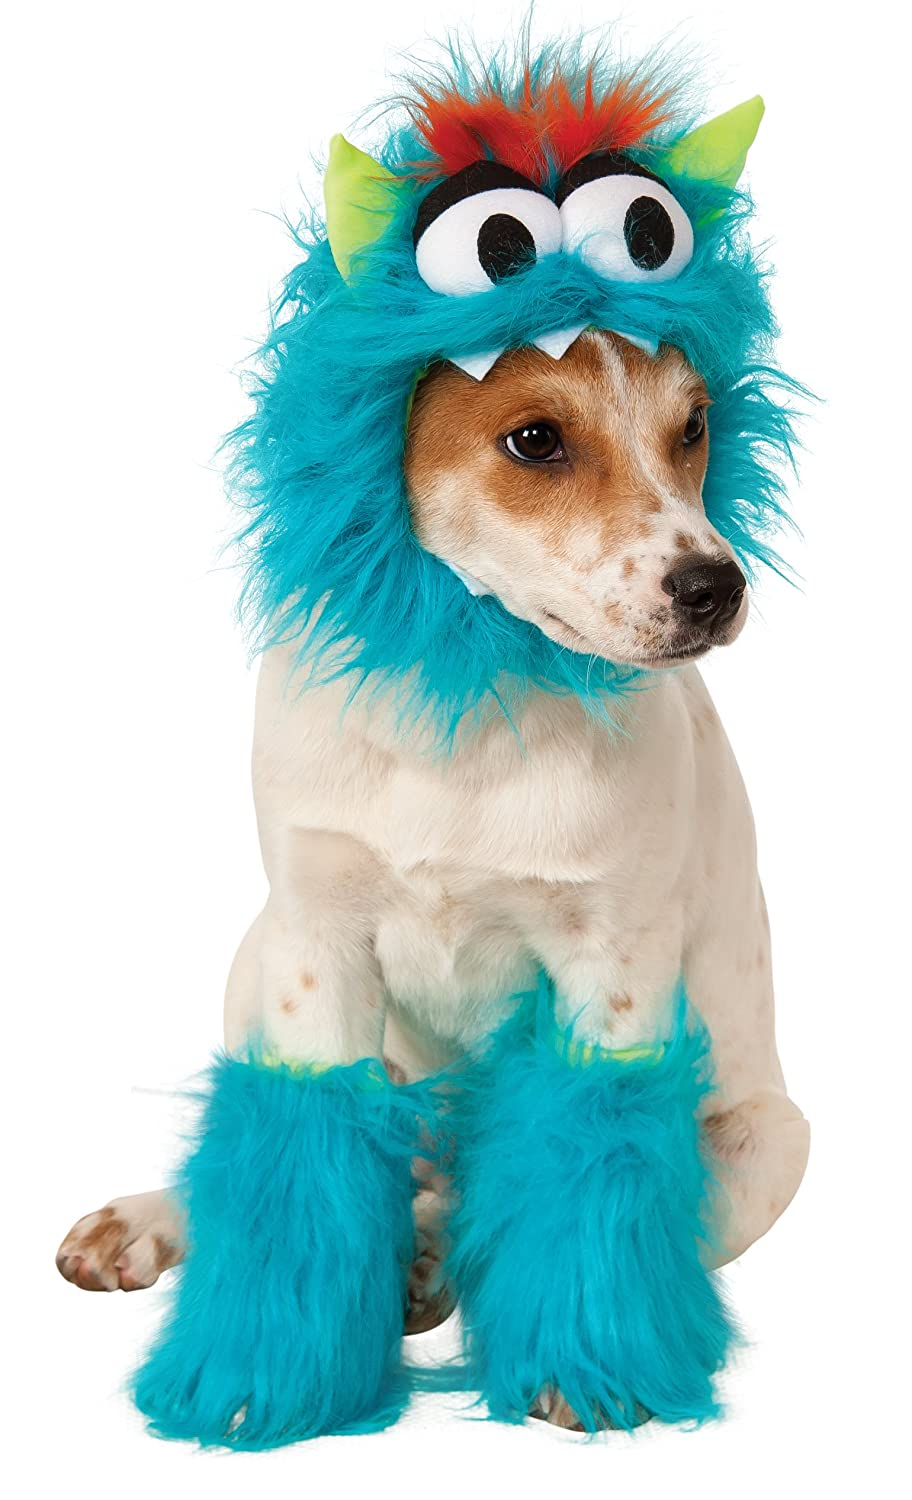 Amazon.com : Fluffy, friendly pet monster costume includes furry ...